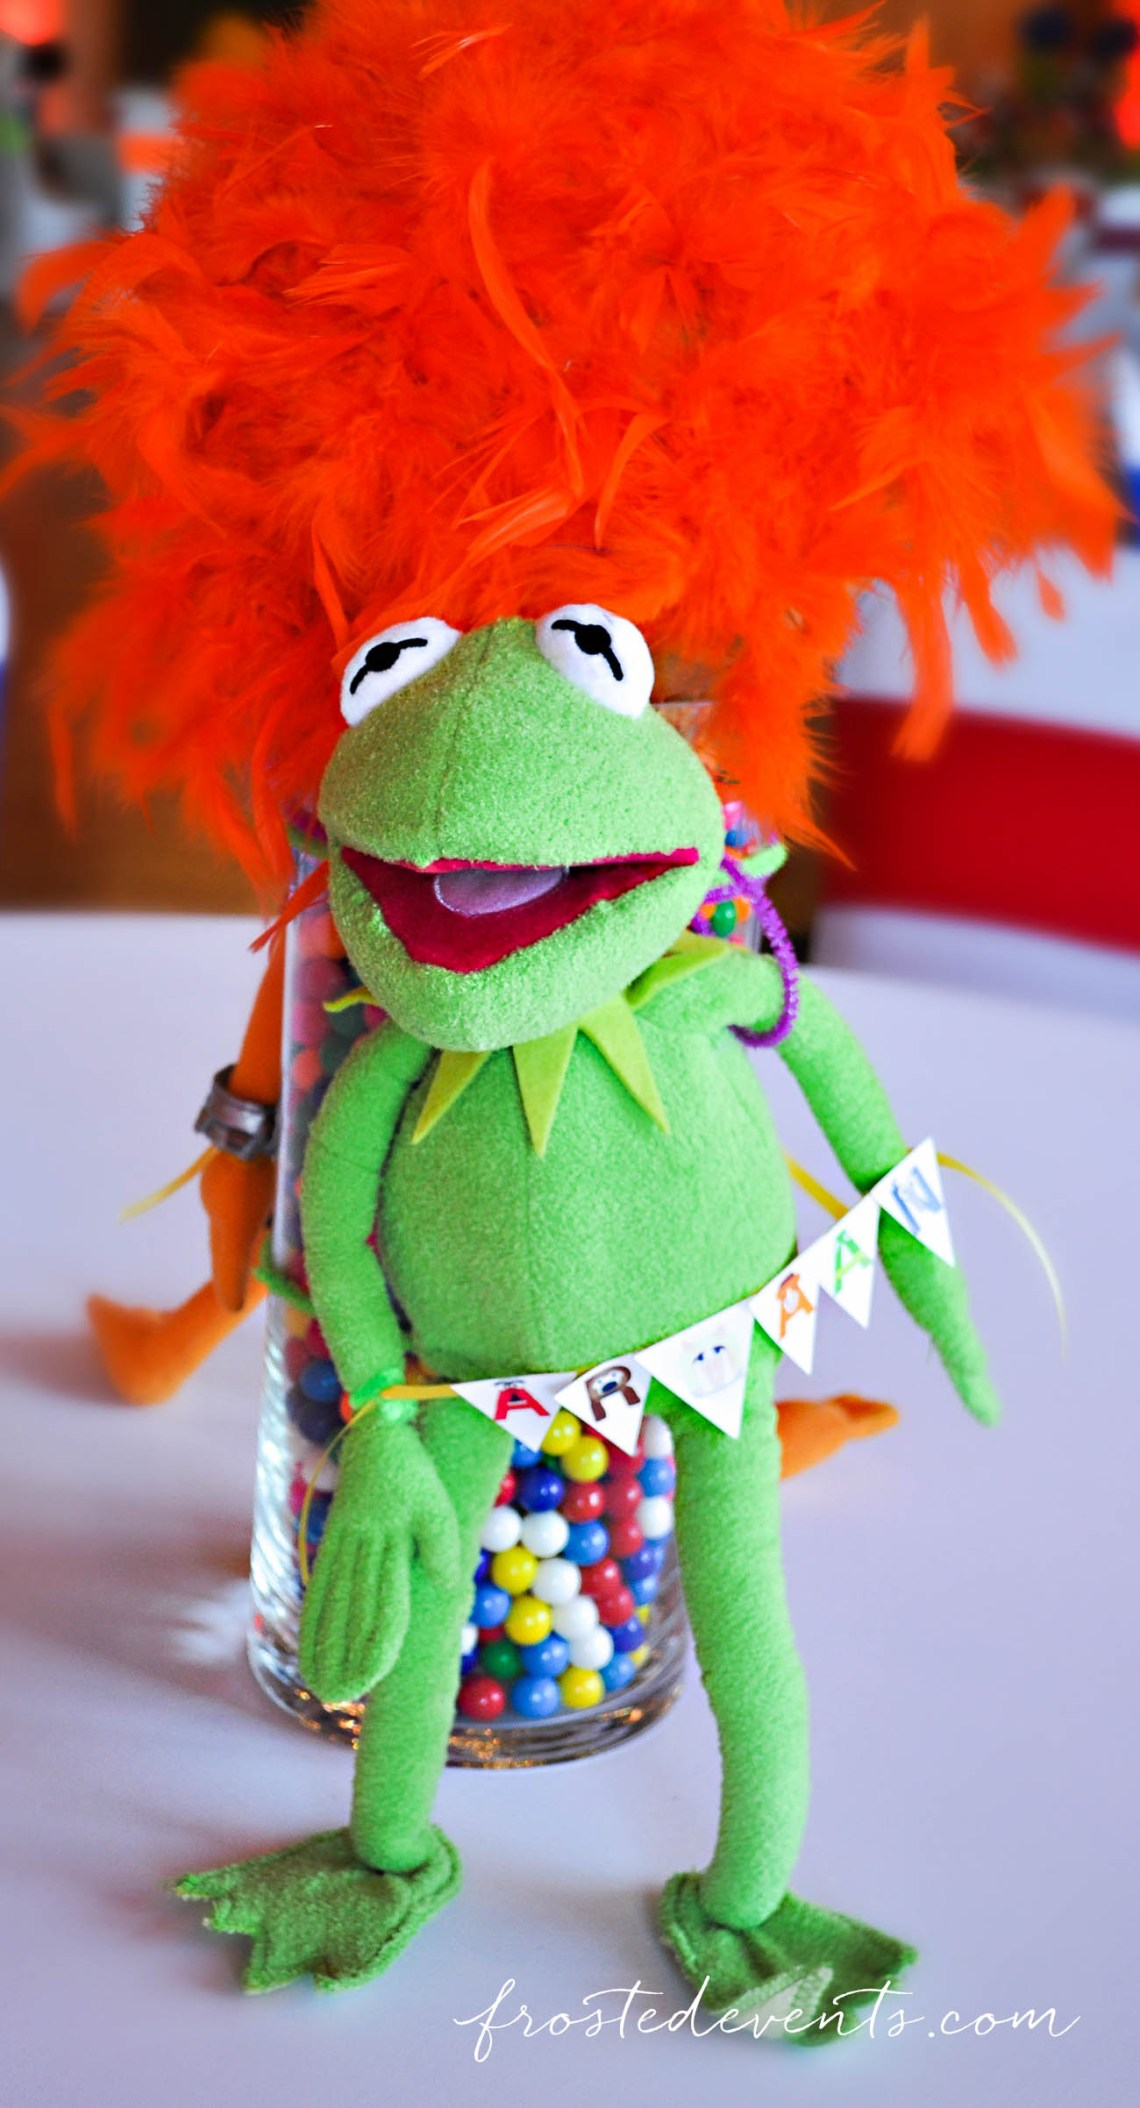 Muppets TV Show- The Muppets Show- Muppets Party Birthday- #muppets muppet party decor